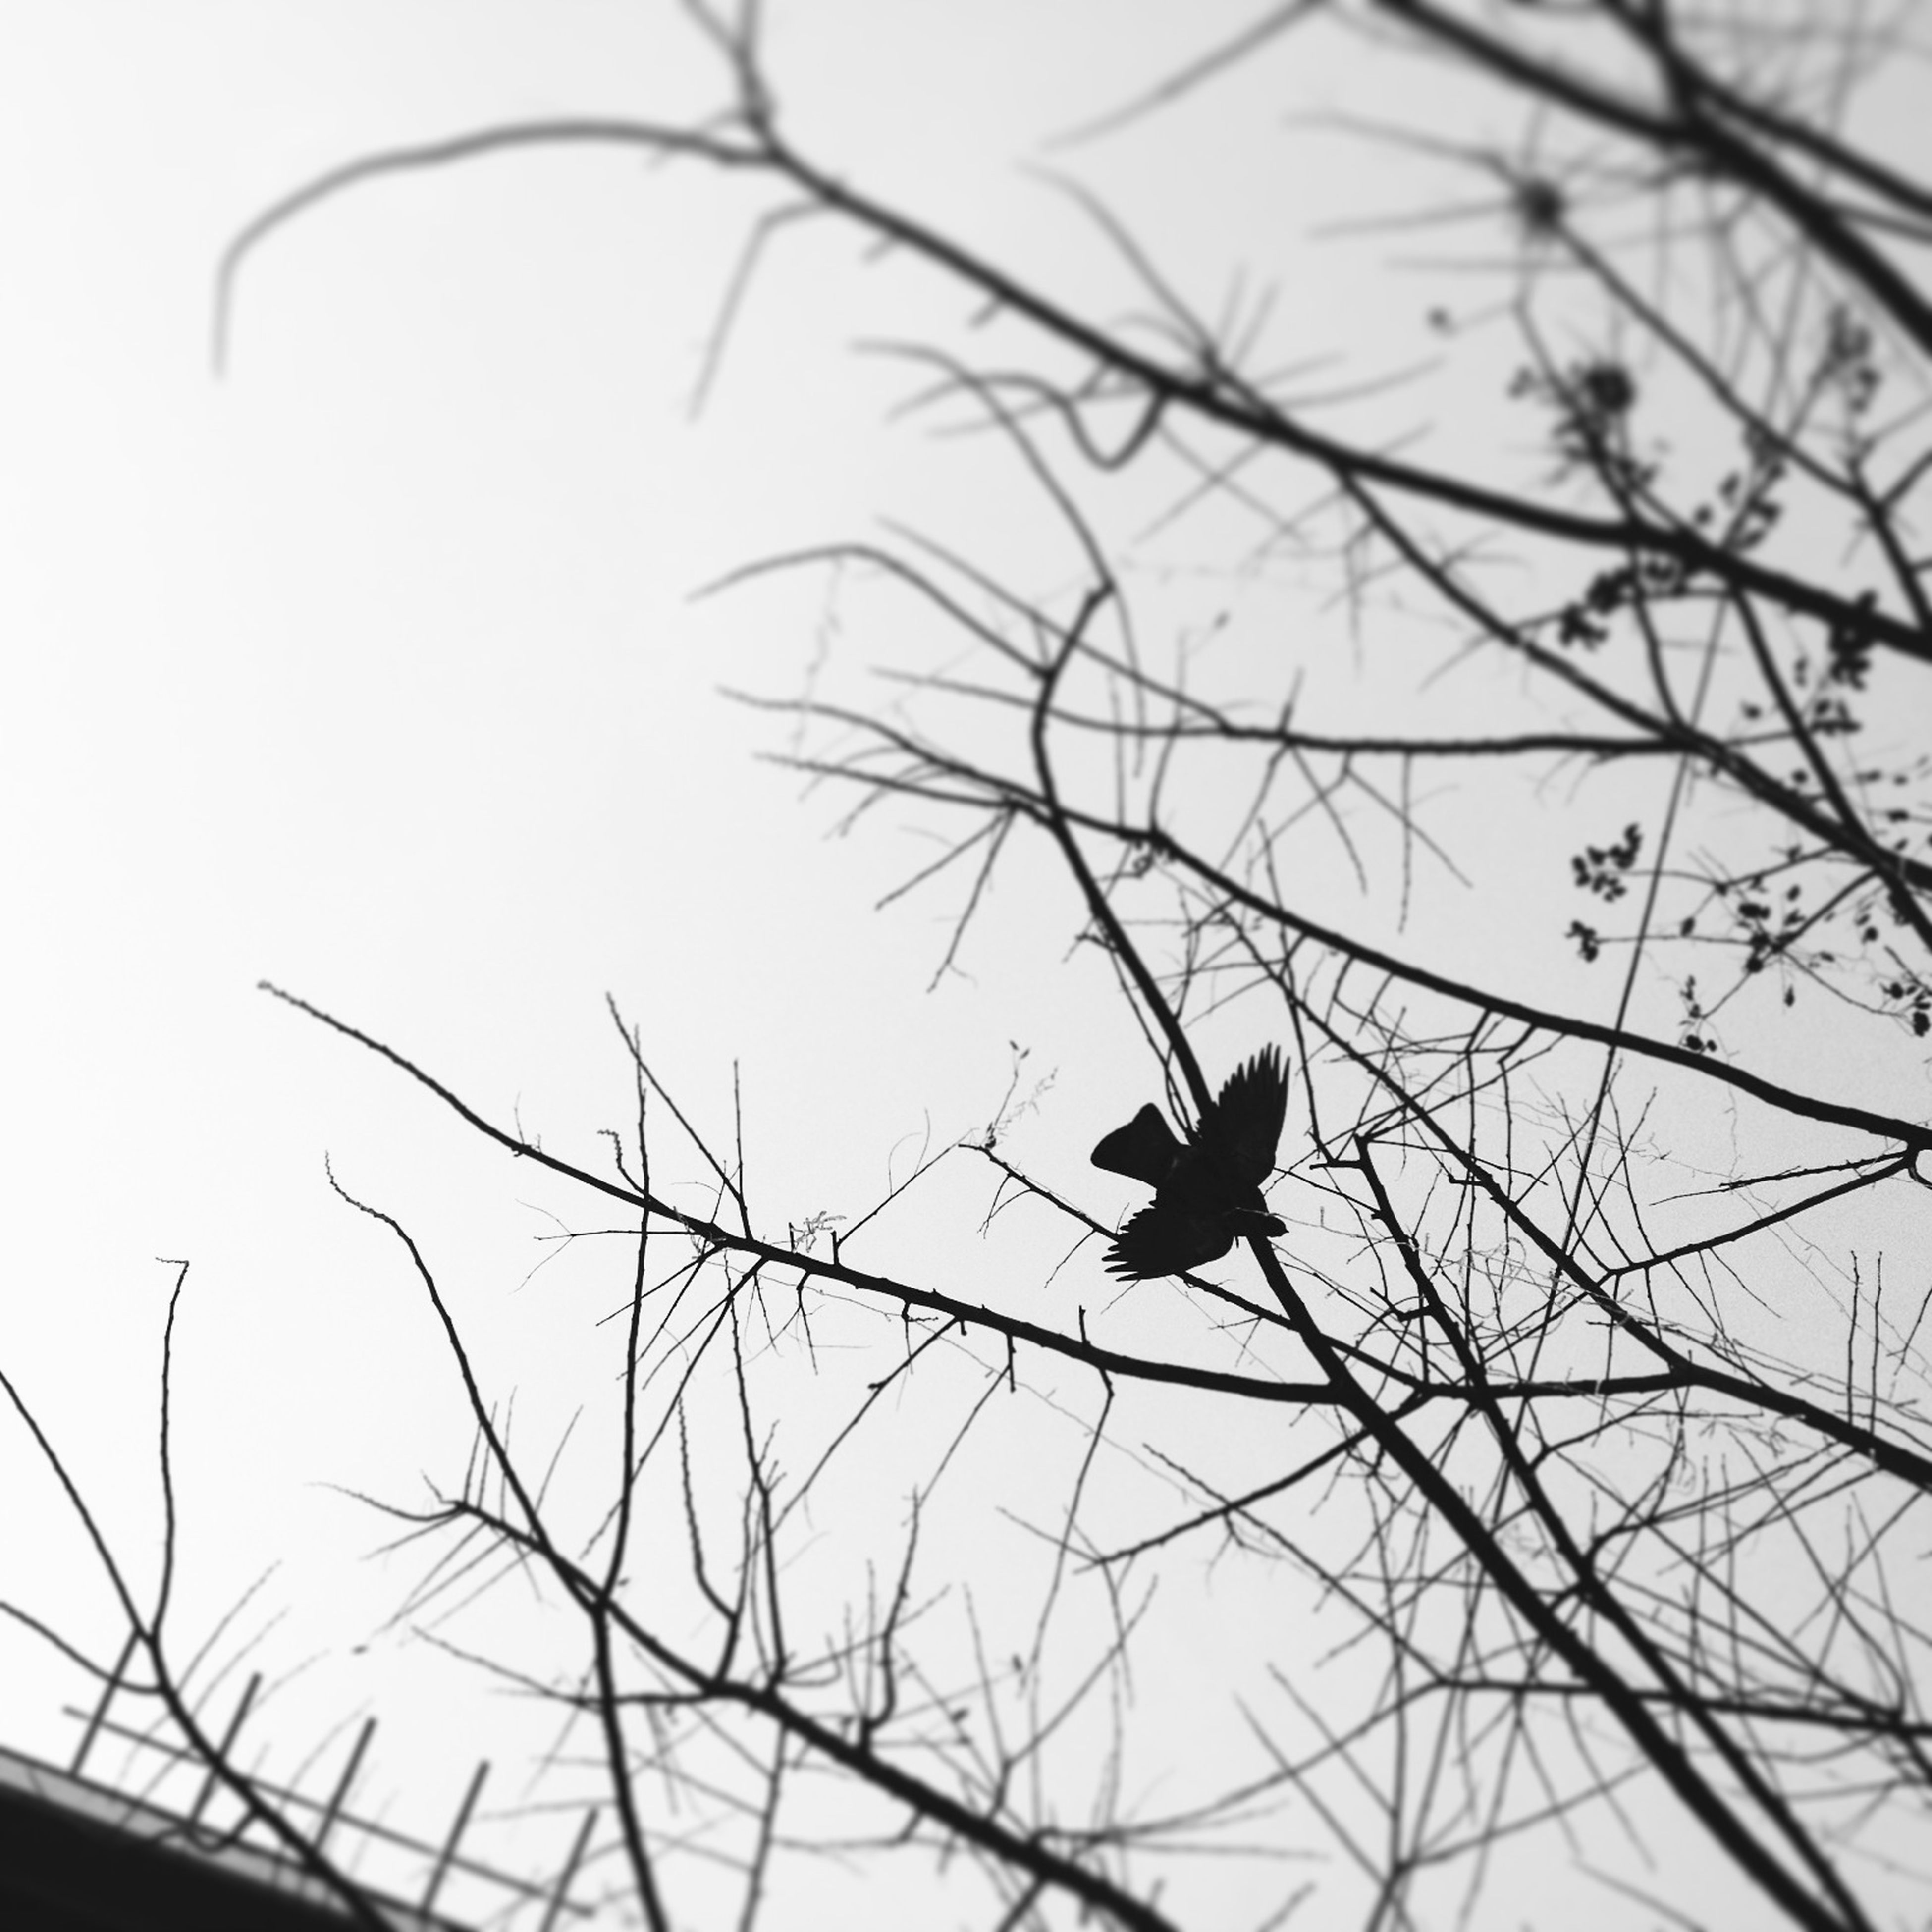 animal themes, bird, one animal, animals in the wild, wildlife, low angle view, perching, branch, silhouette, clear sky, bare tree, nature, flying, tree, outdoors, sky, no people, day, zoology, two animals